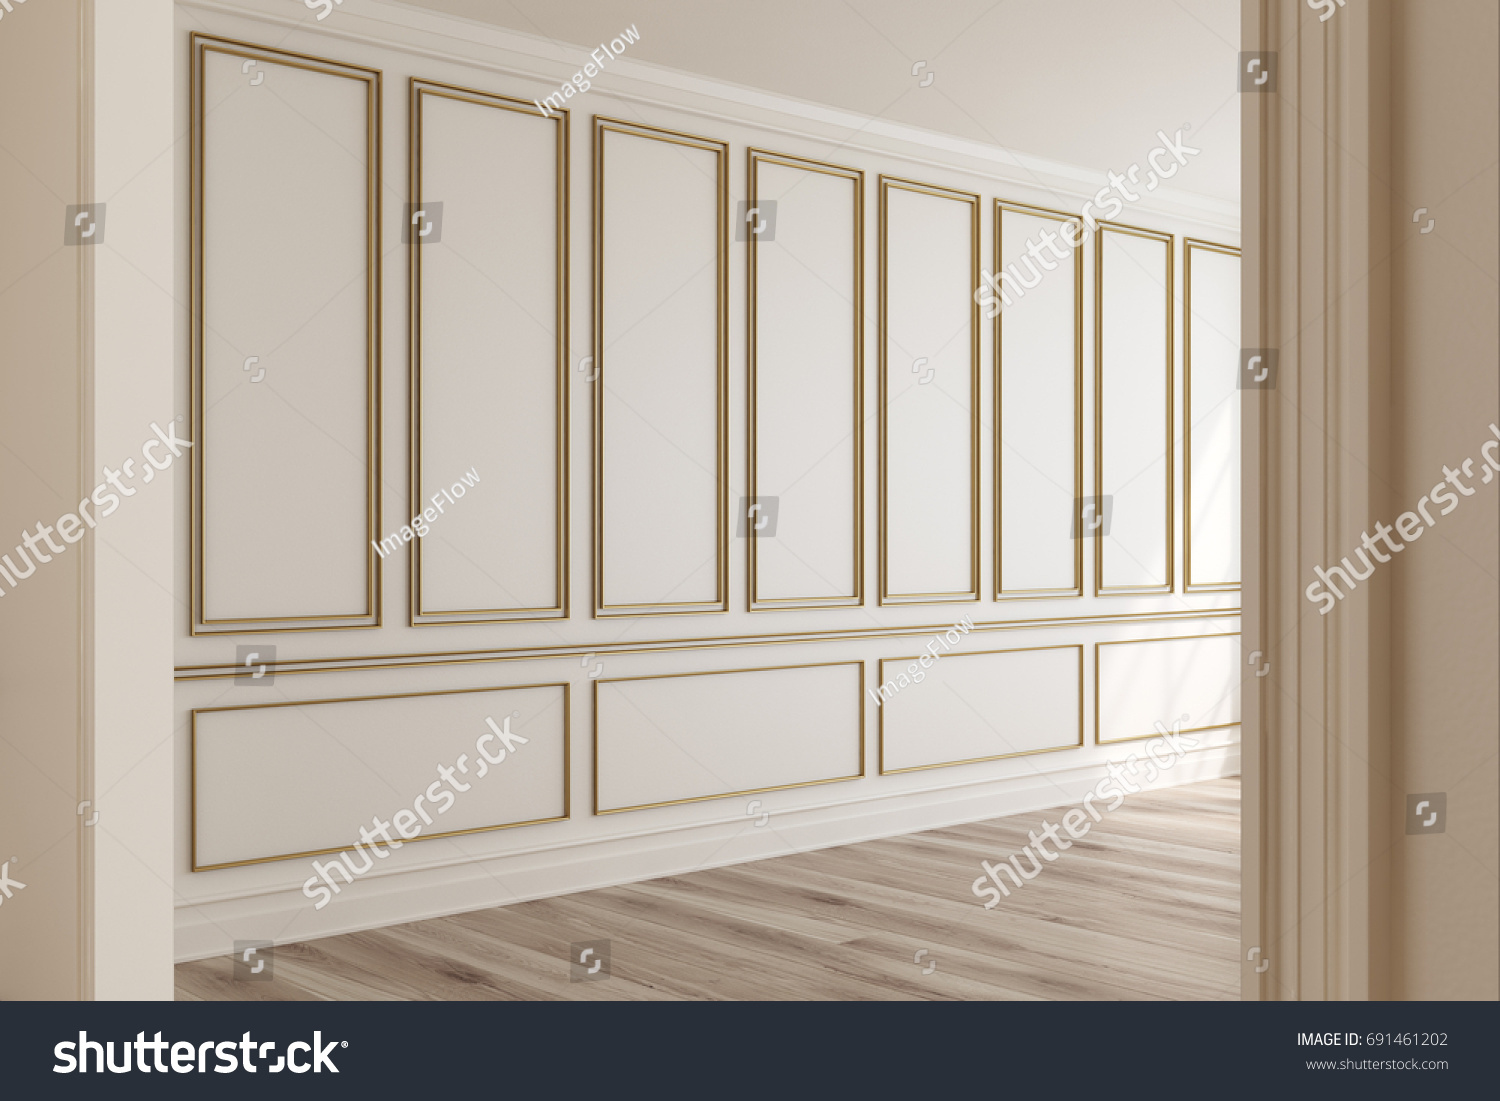 Empty Luxury Room Interior With White Walls, Frame Like Decoration Elements  On Them And A